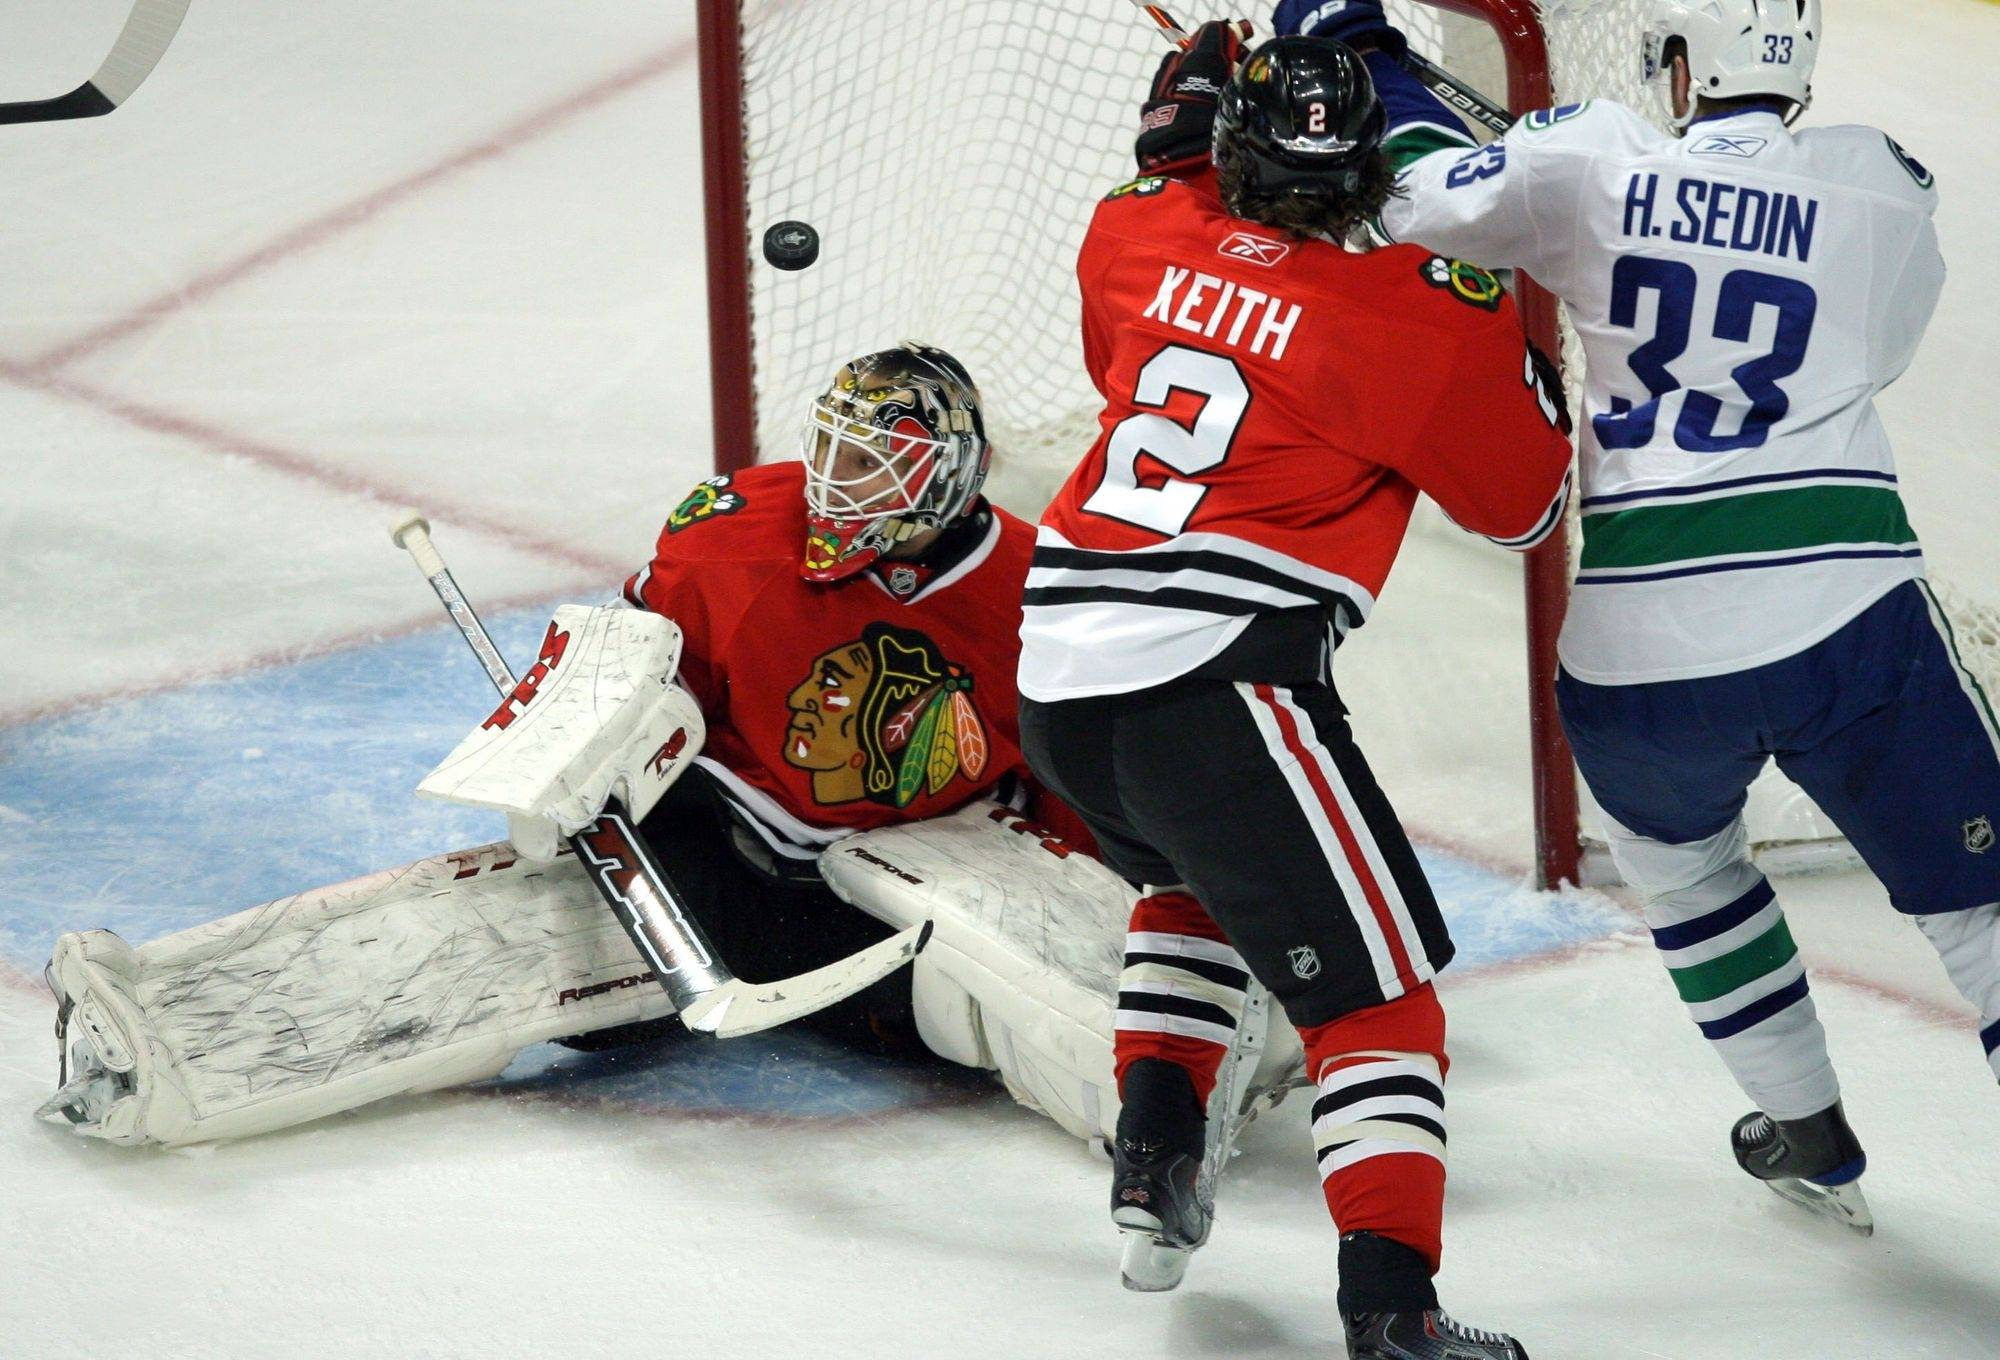 The Blackhawks' Antti Niemi watches the the puck go into the net during the first period.